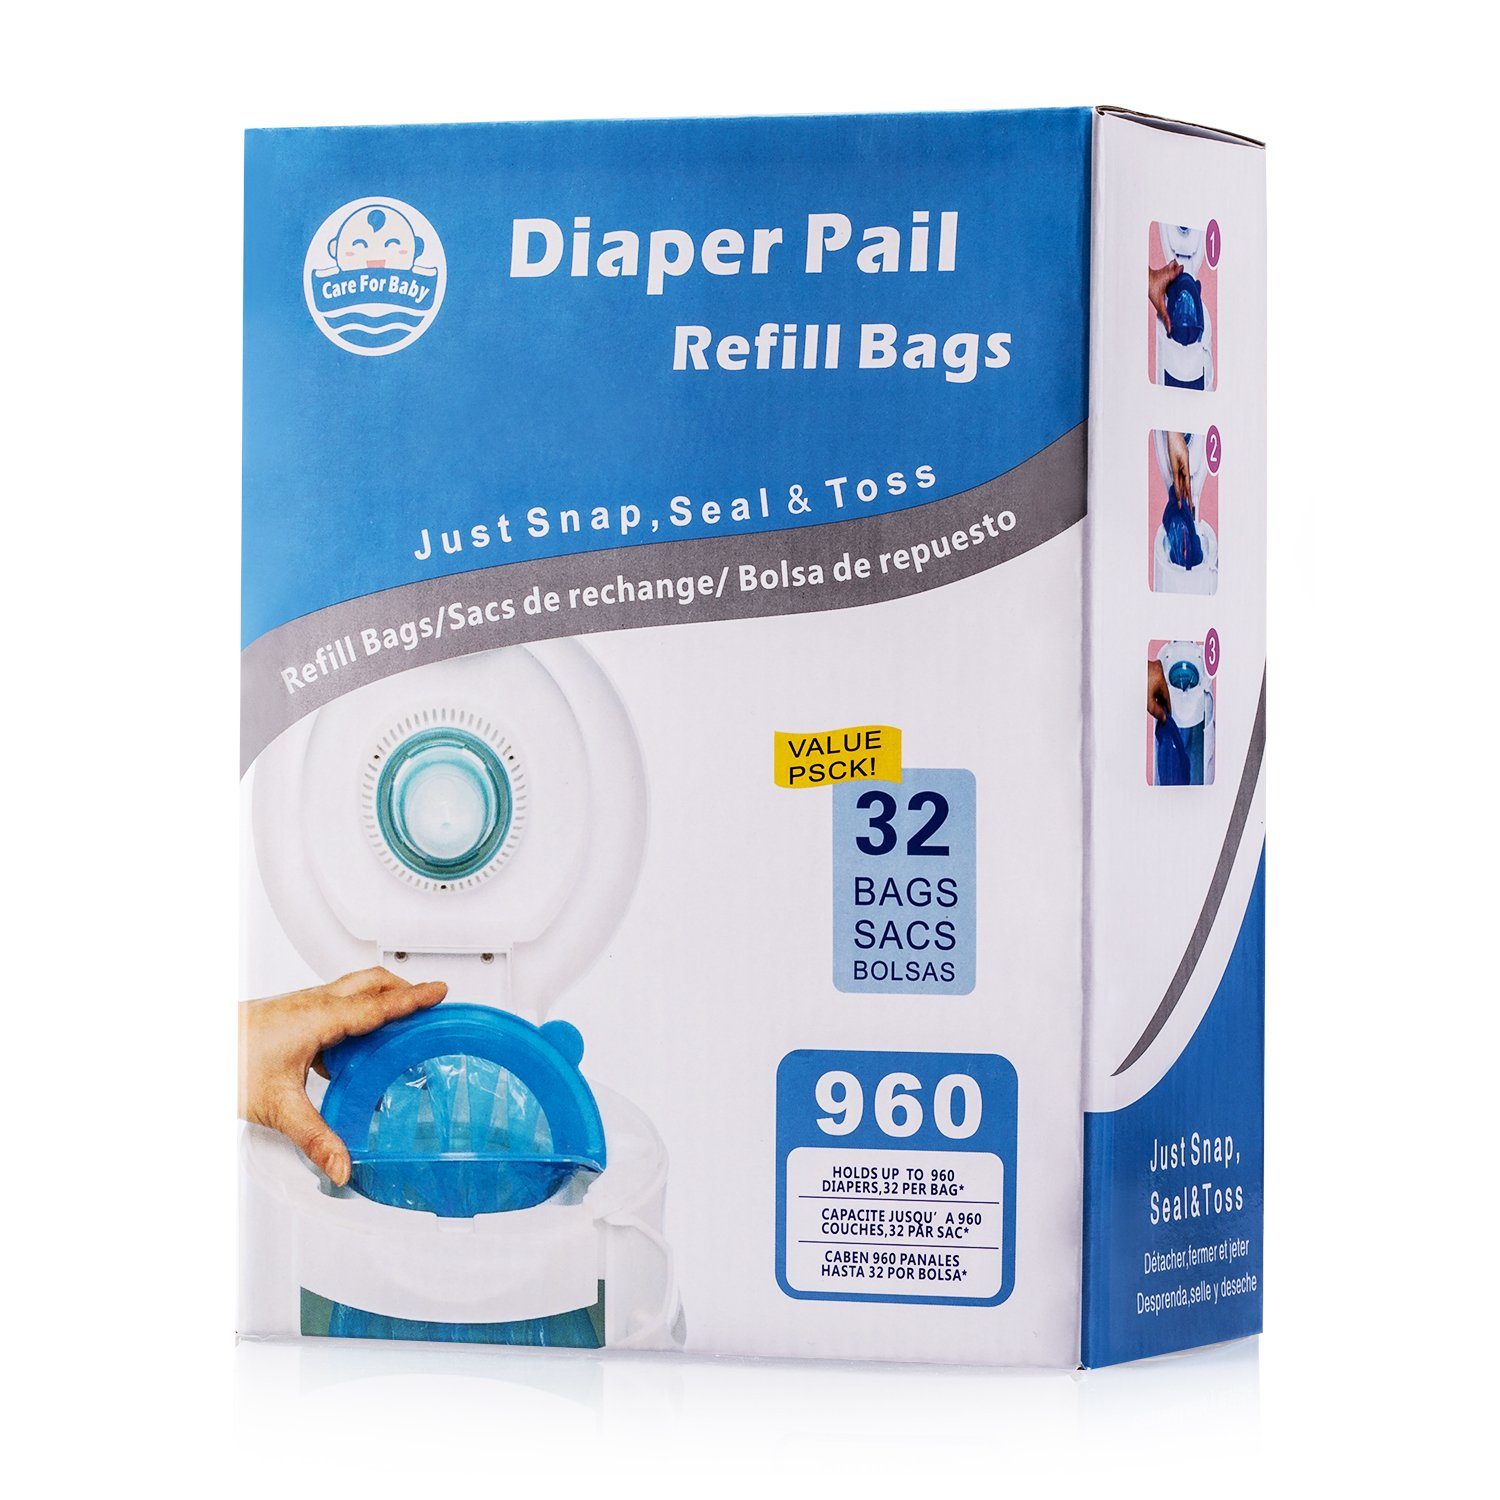 Careforbaby Diaper Pail Refill Bags (960 Counts) Fully Compatible with Arm&Hammer Disposal System - 32 Bags